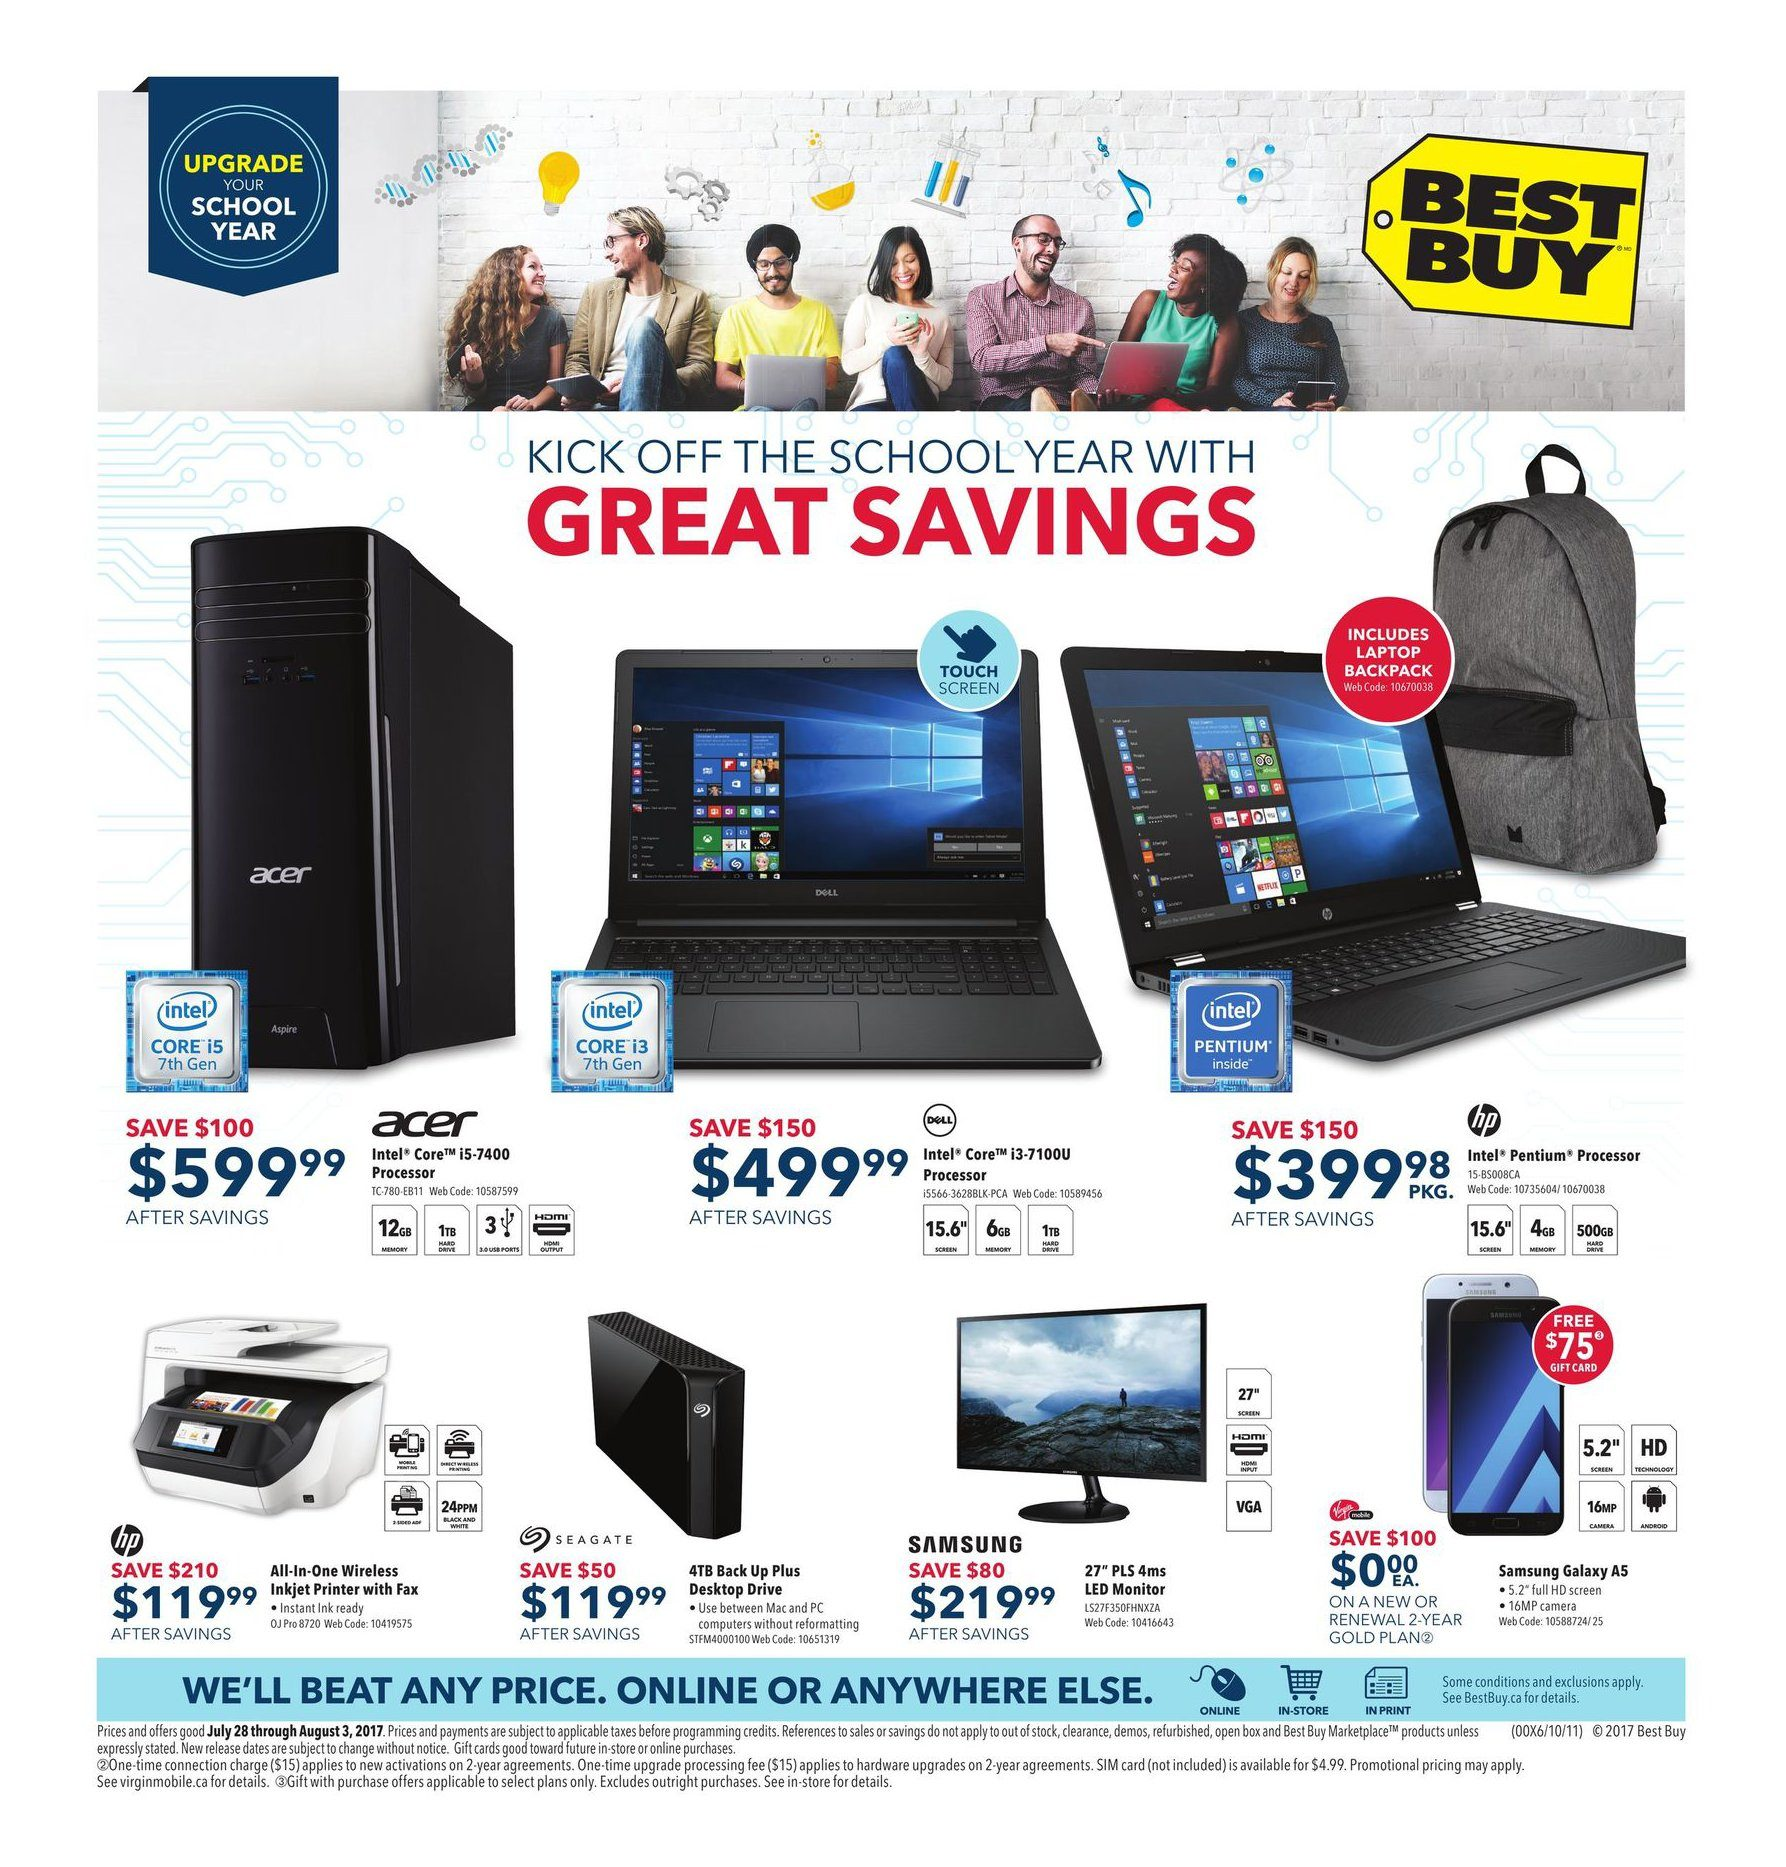 ca829d0e03ae8 Best Buy Weekly Flyer - Weekly - Kick Off The School Year with Great  Savings - Jul 28 – Aug 3 - RedFlagDeals.com